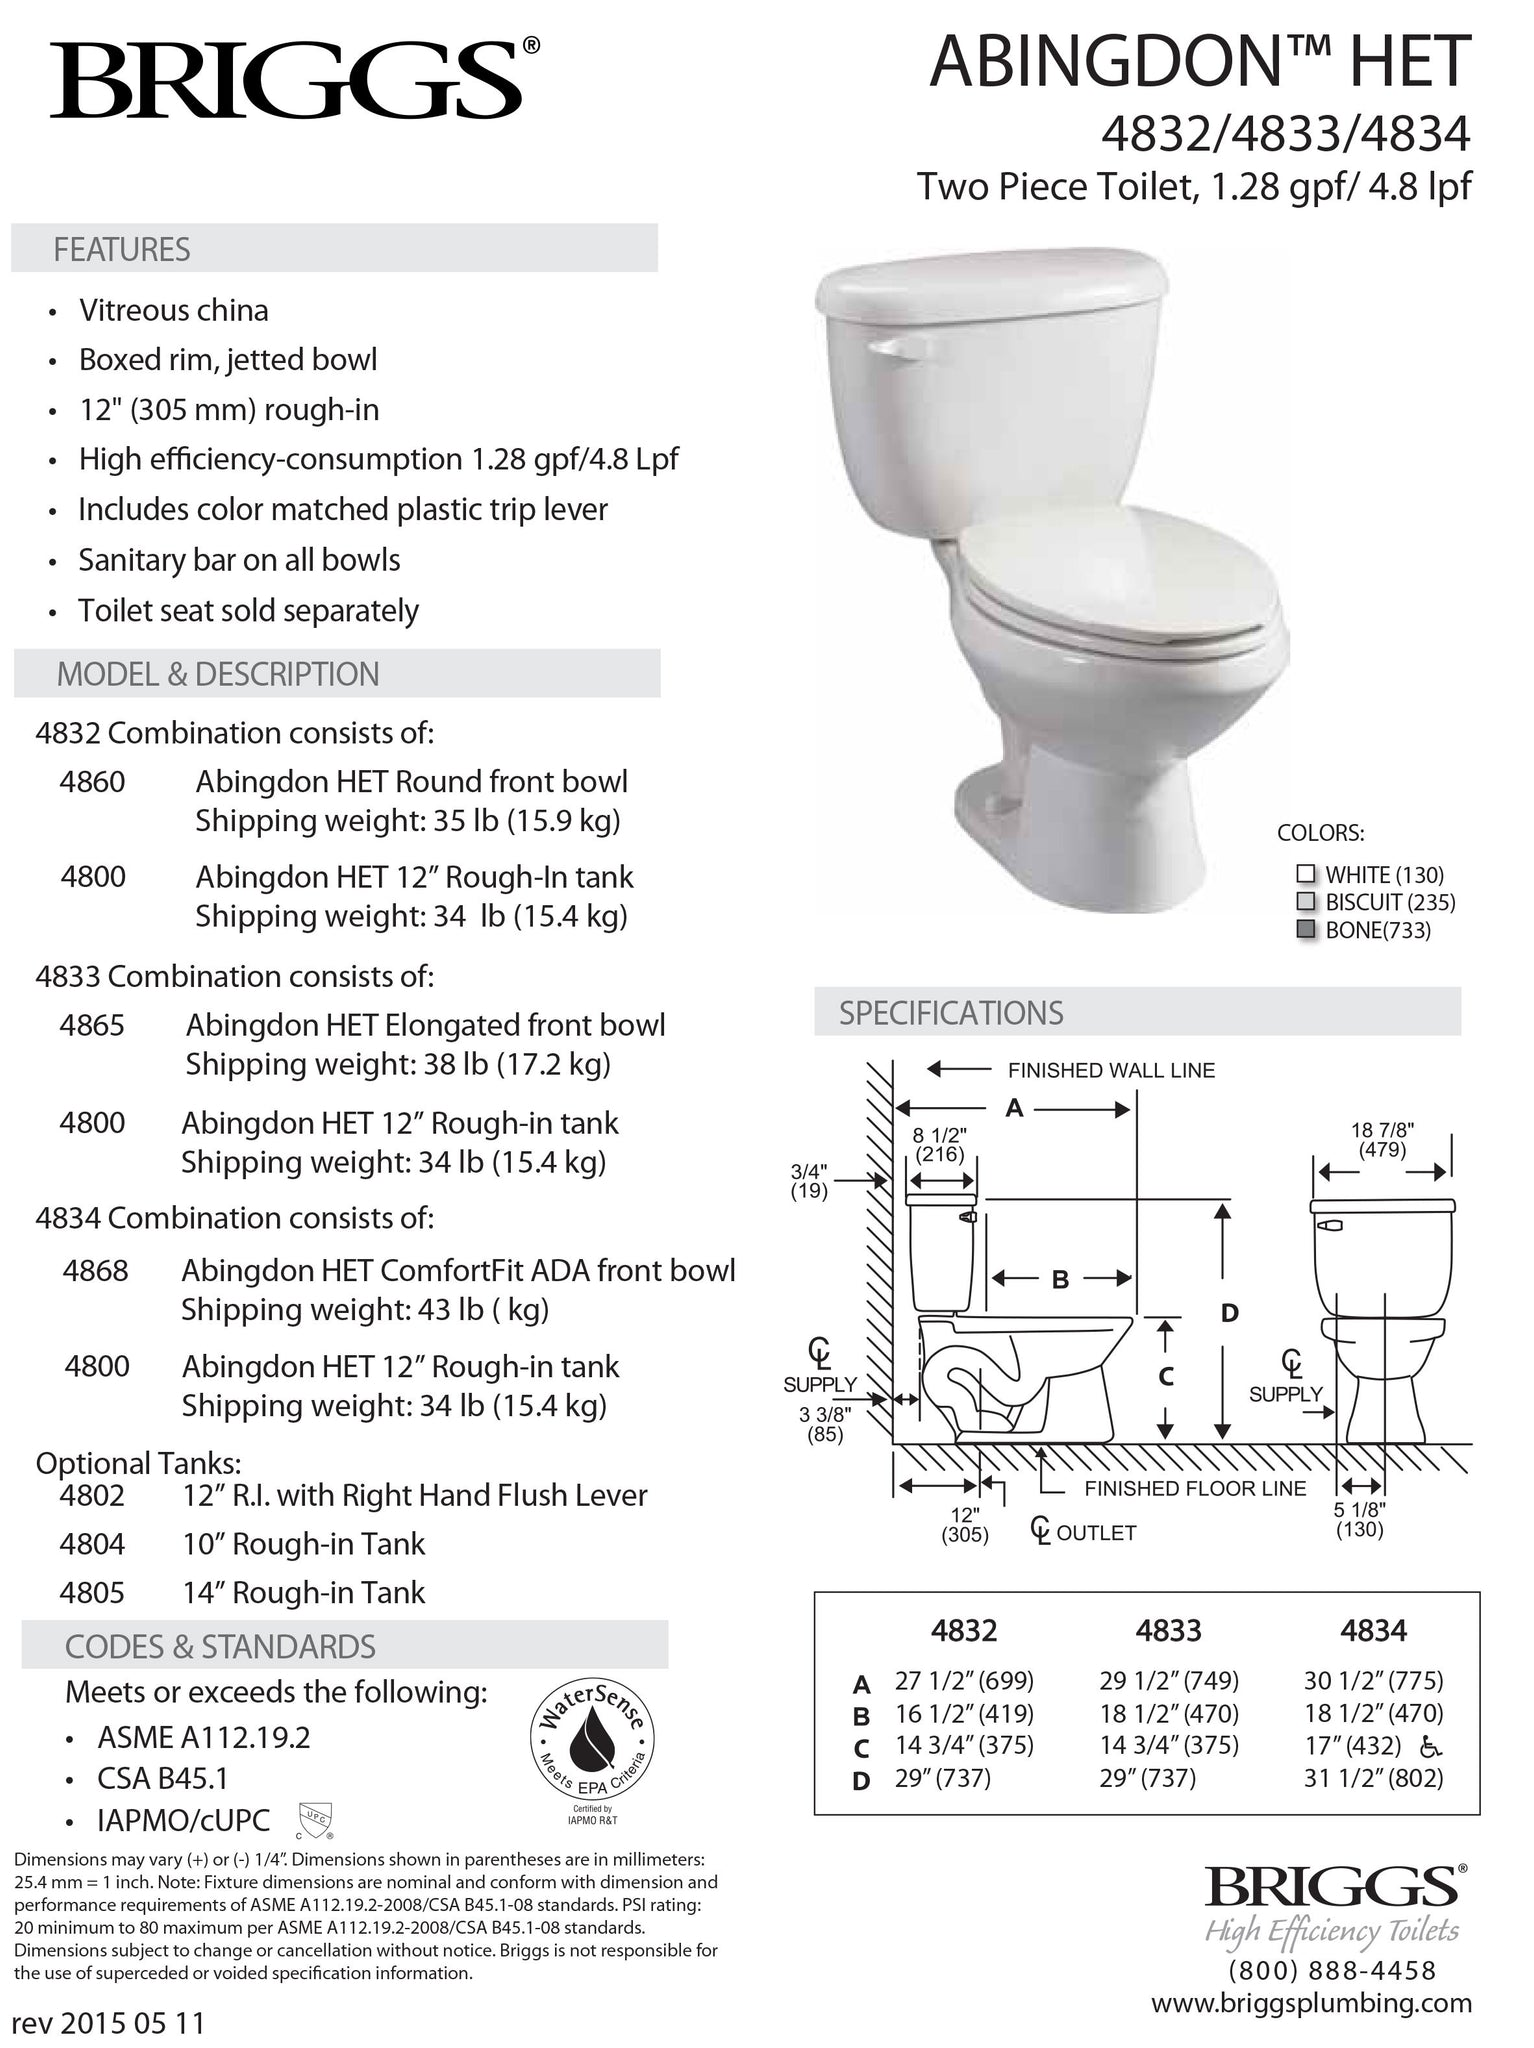 Abingdon Toilet HET 1.28 gpf Submittal Sheet